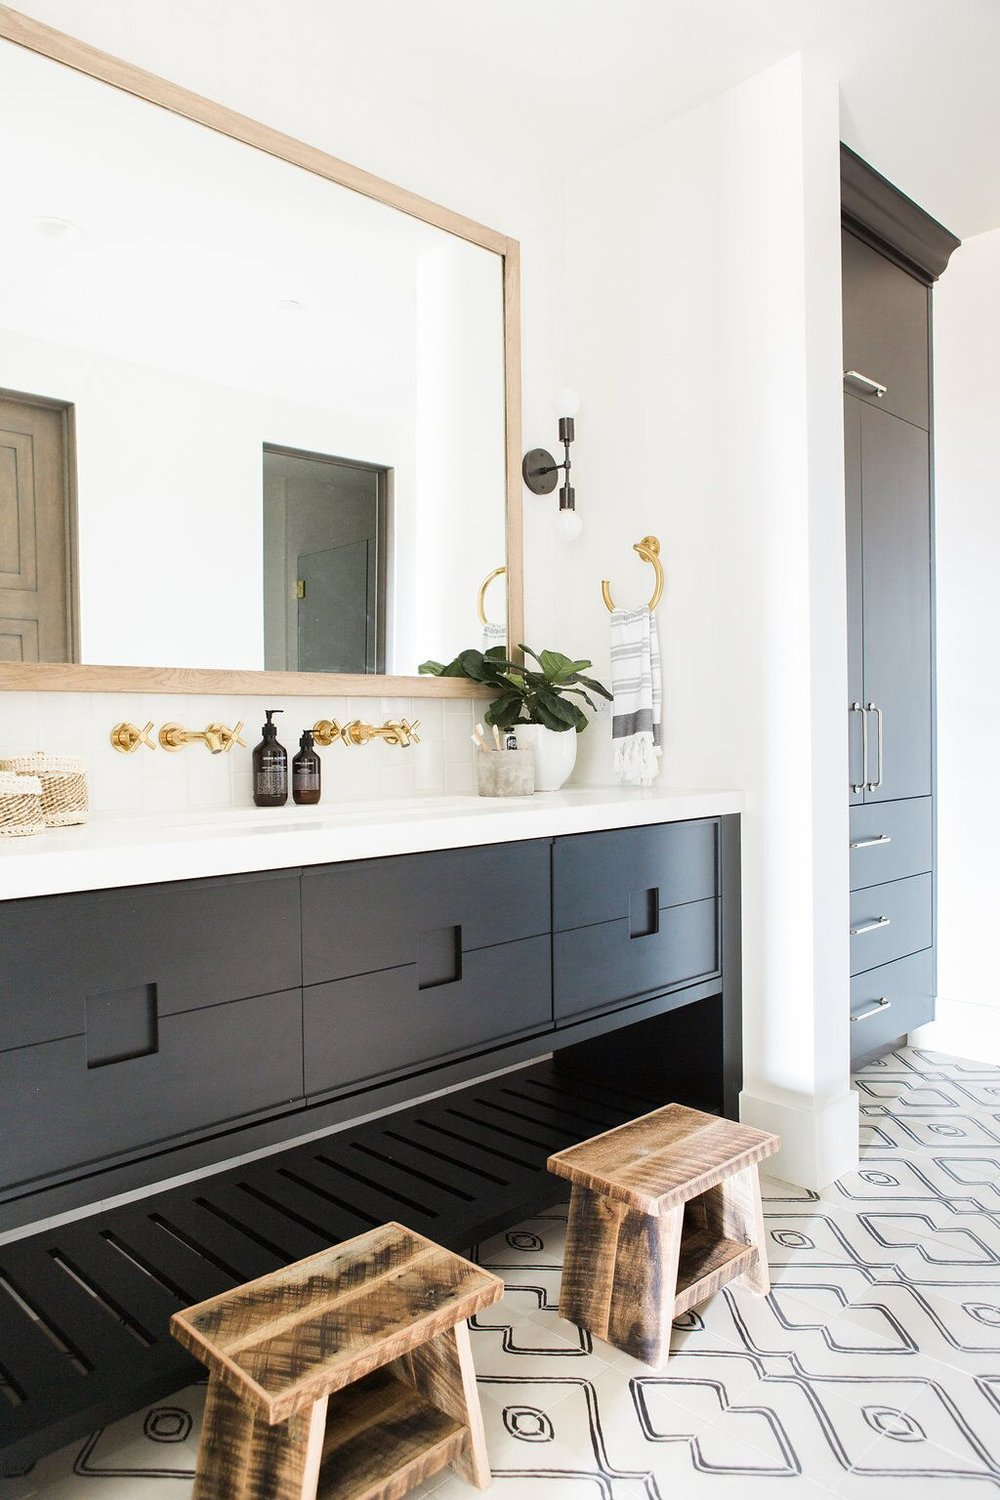 Bathroom with patterned tile, white countertops and gold hardware